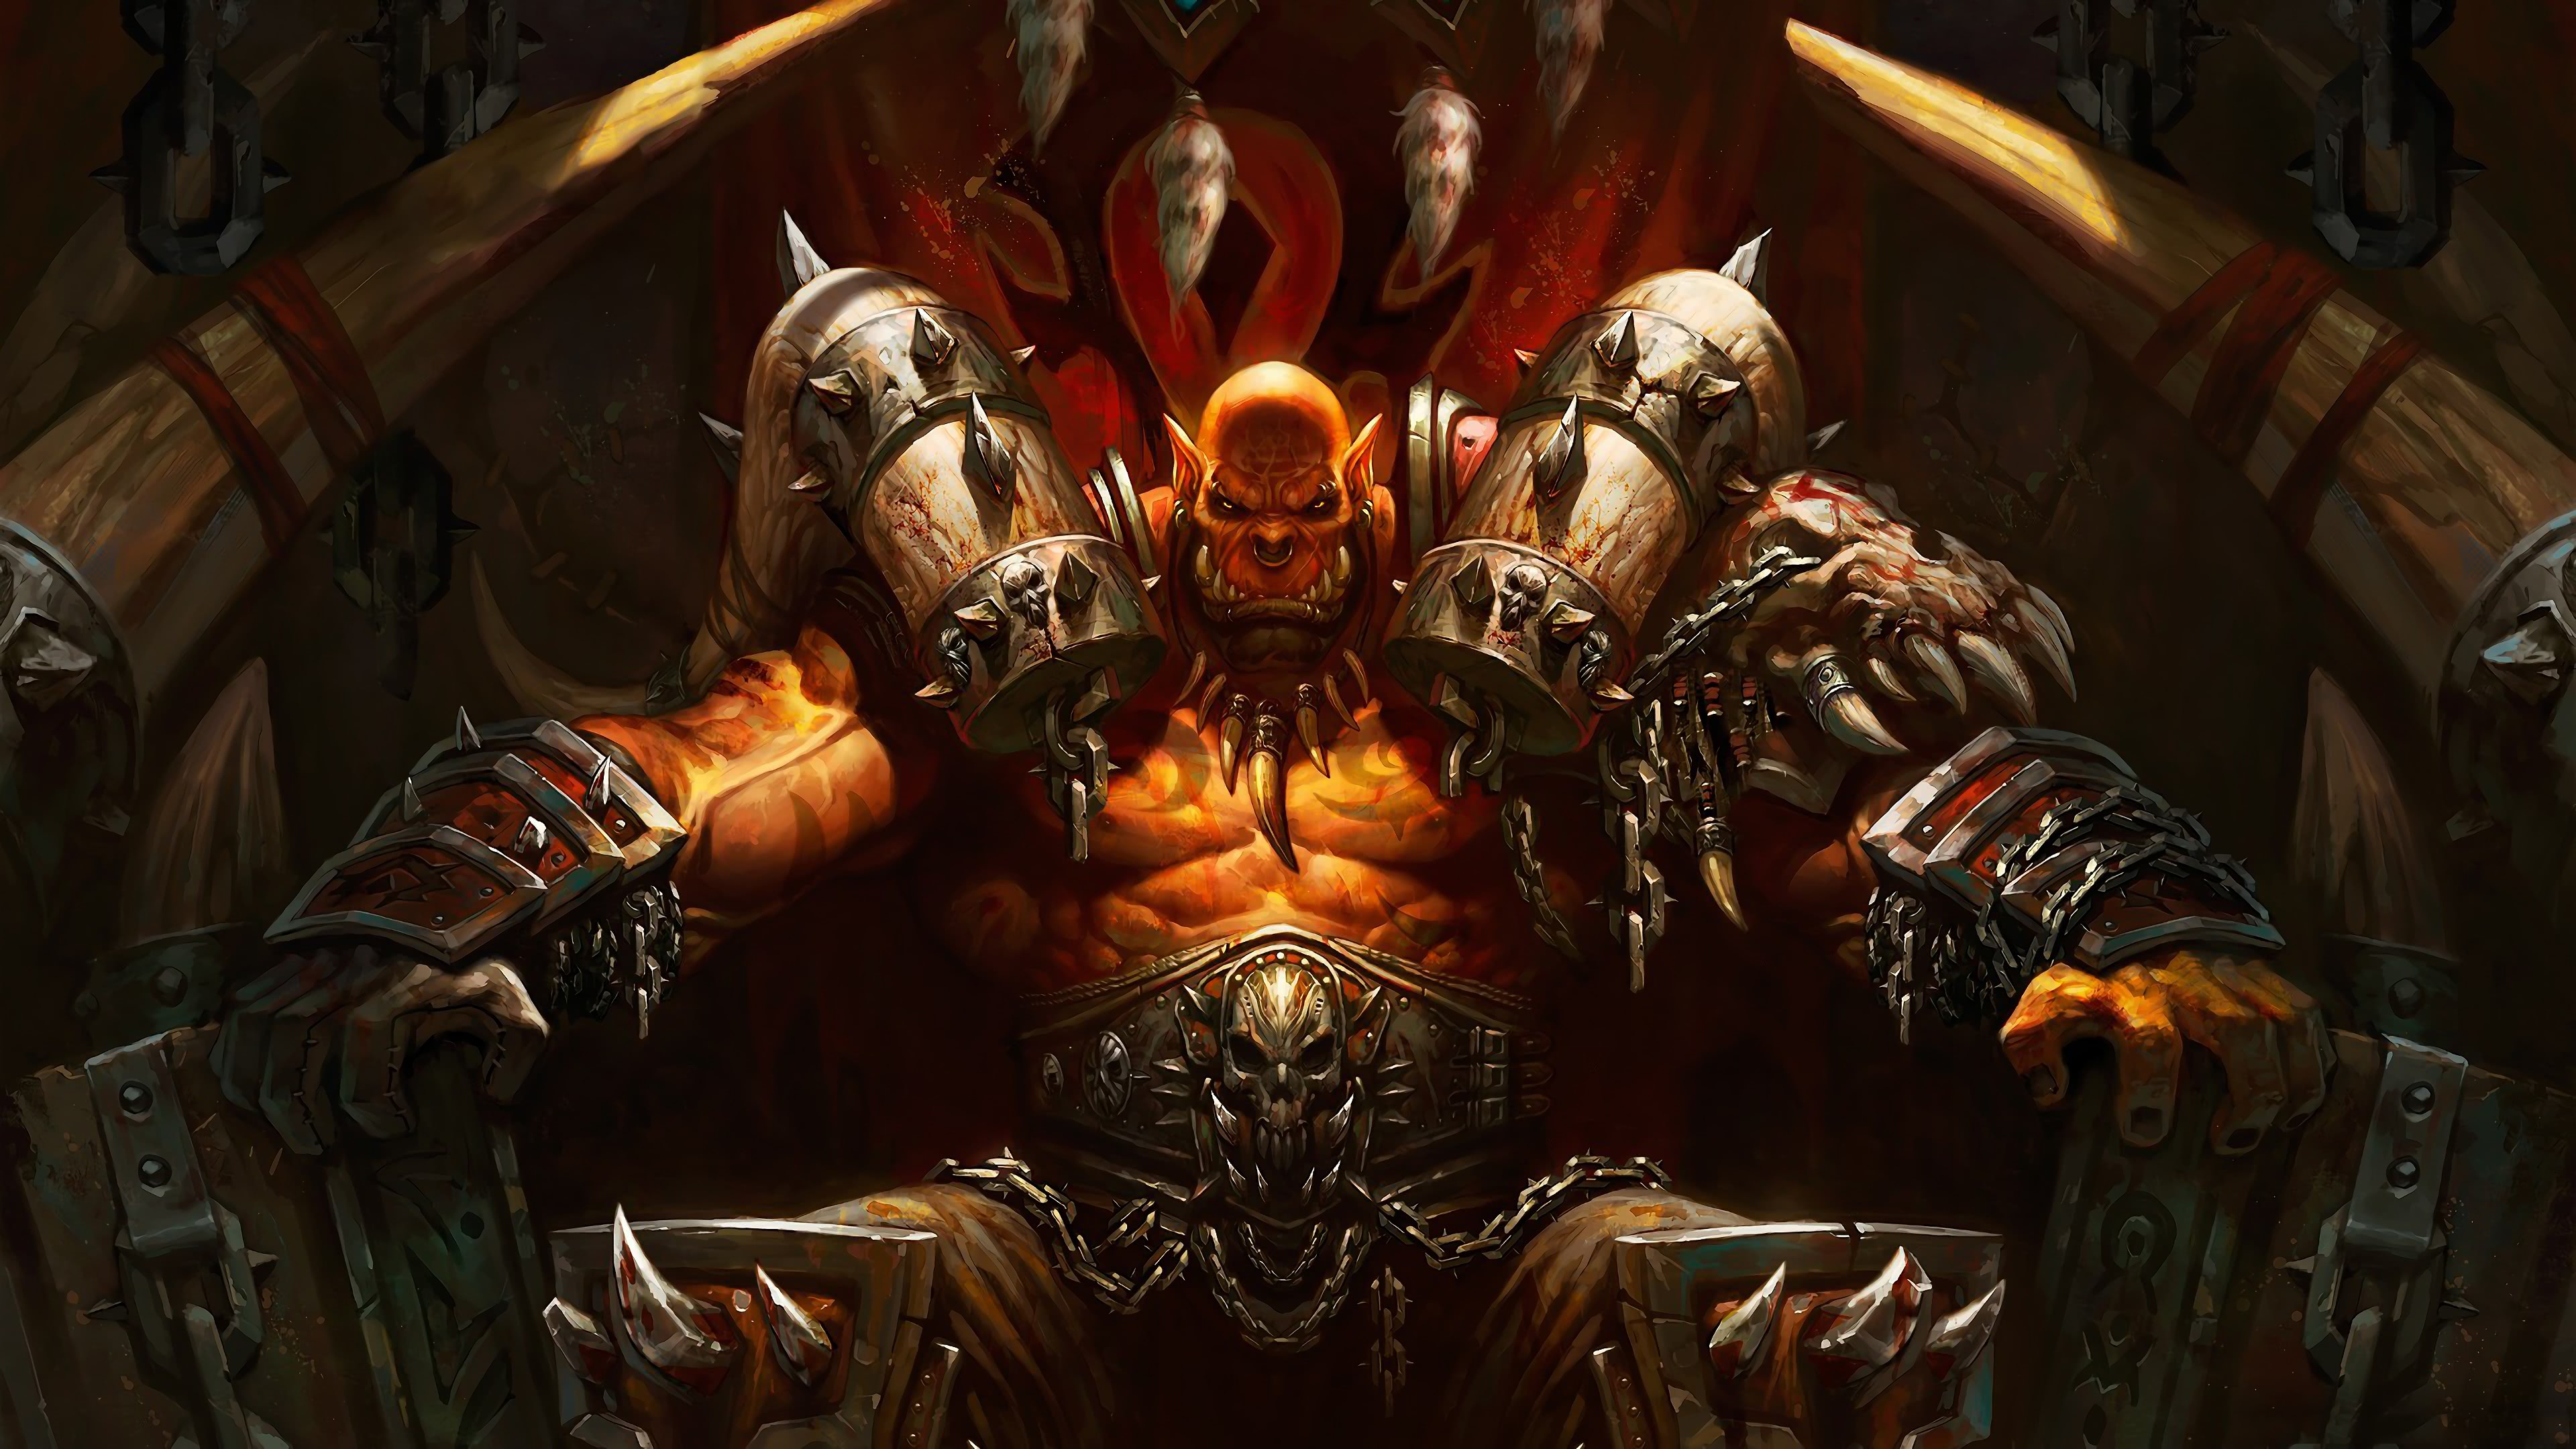 World Of Warcraft Garrosh Hellscream Uhd 4k Wallpaper Pixelz